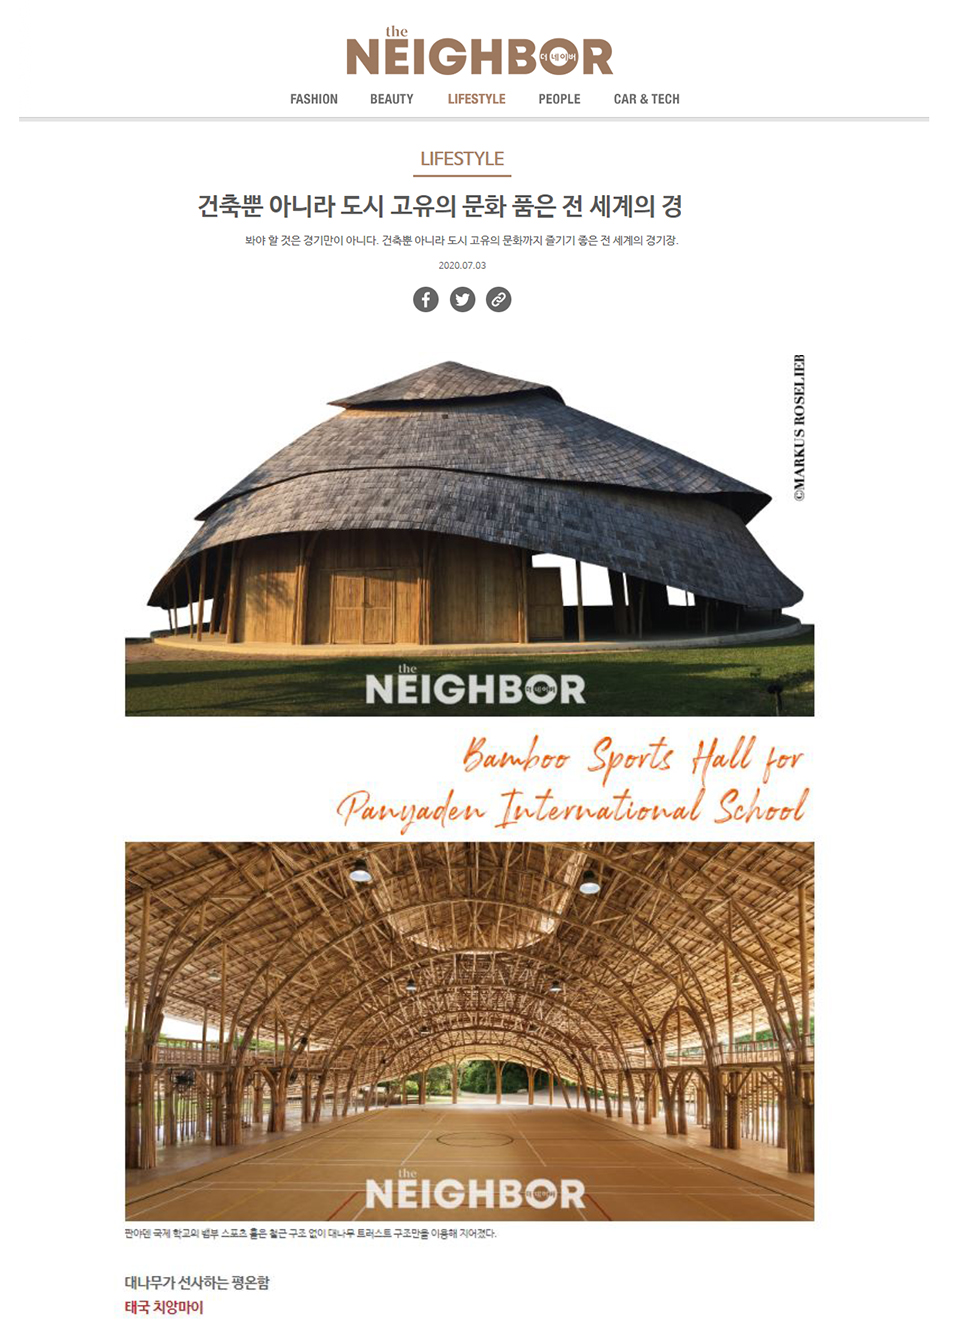 Bamboo Sports Hall At The Neighbor